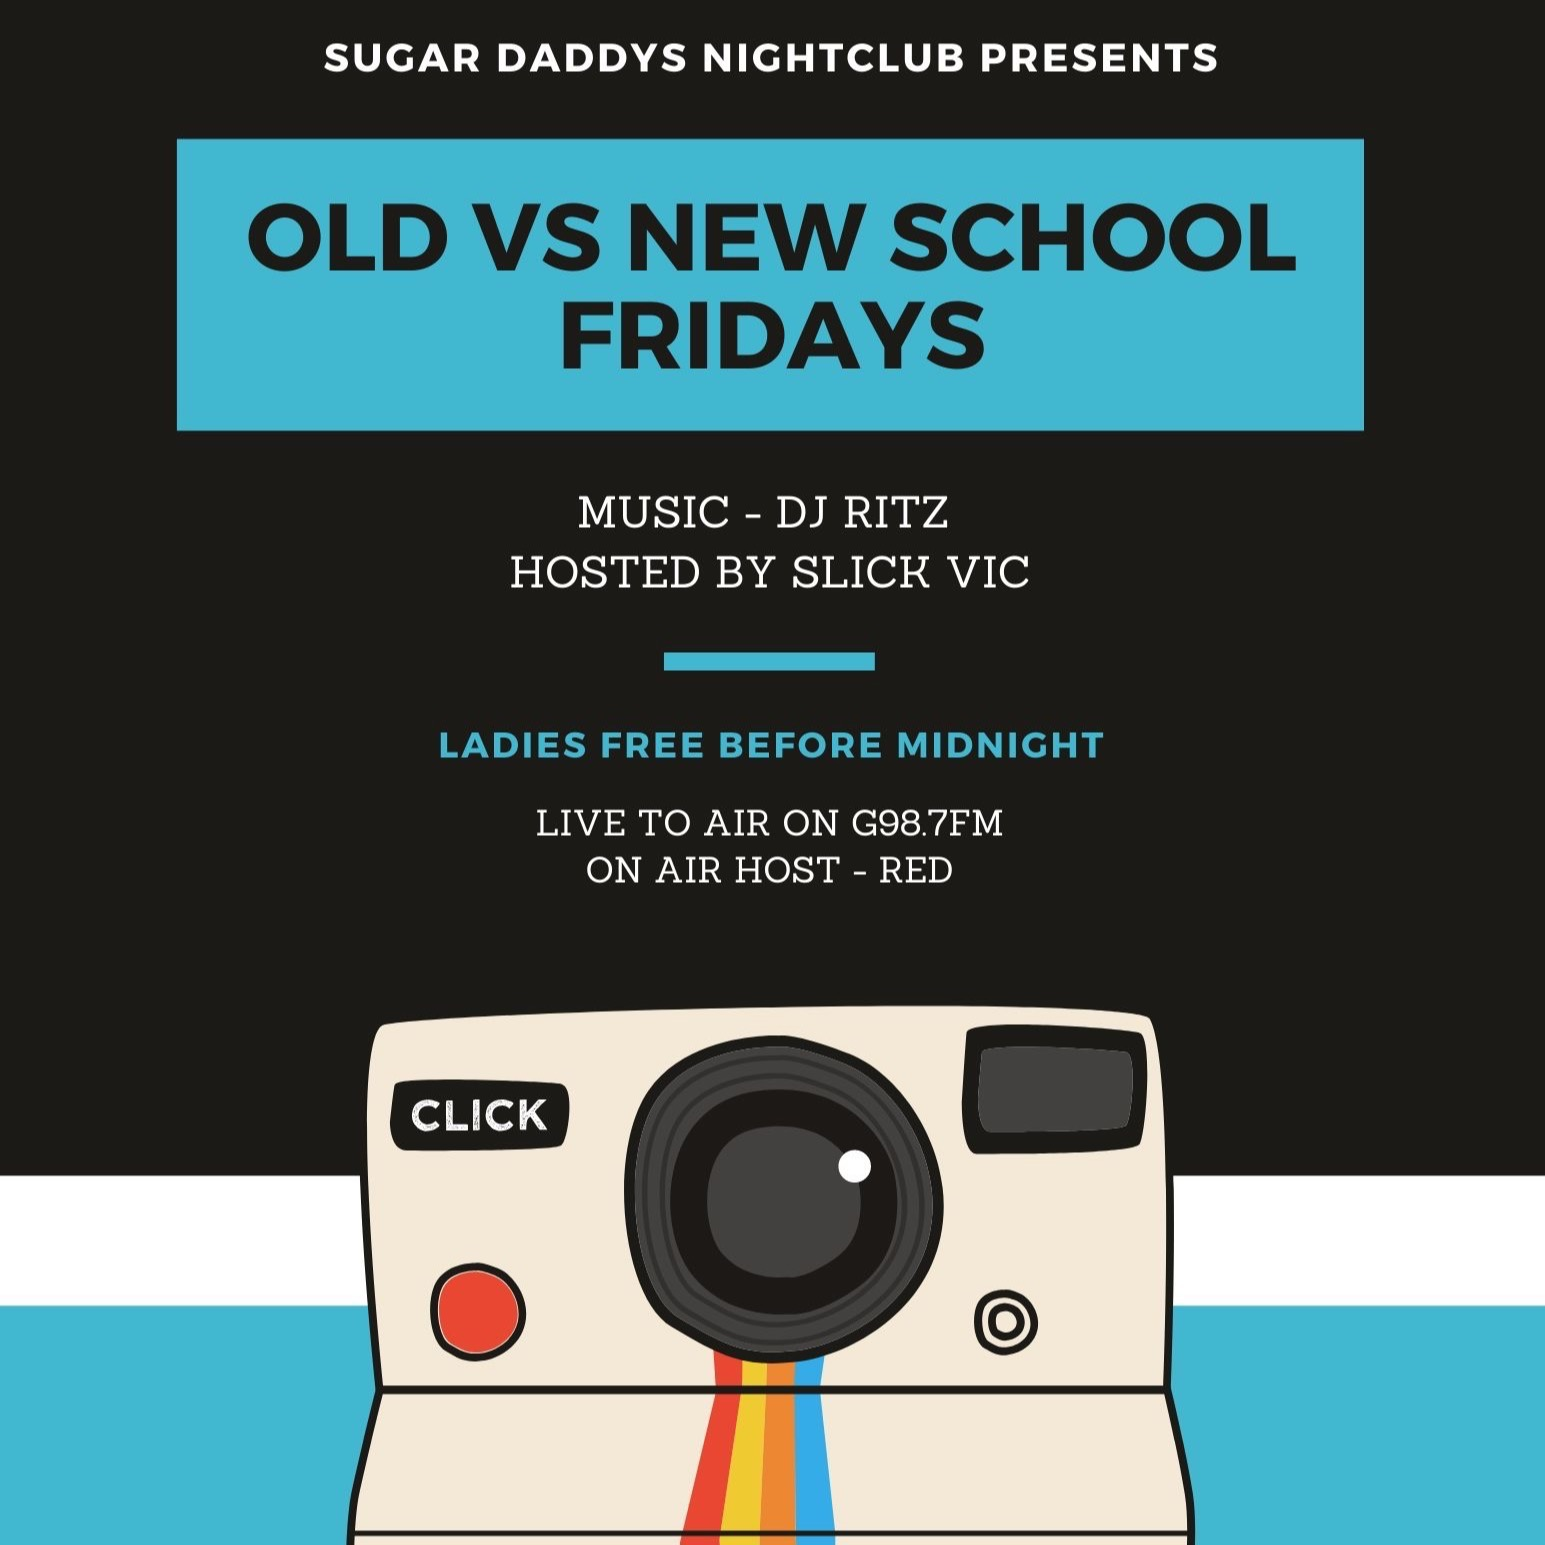 OLD VS NEW SCHOOL FRIDAYS SUGAR DADDYS LIVE G987 W/ RED, DJ RITZ, SLICK VIC